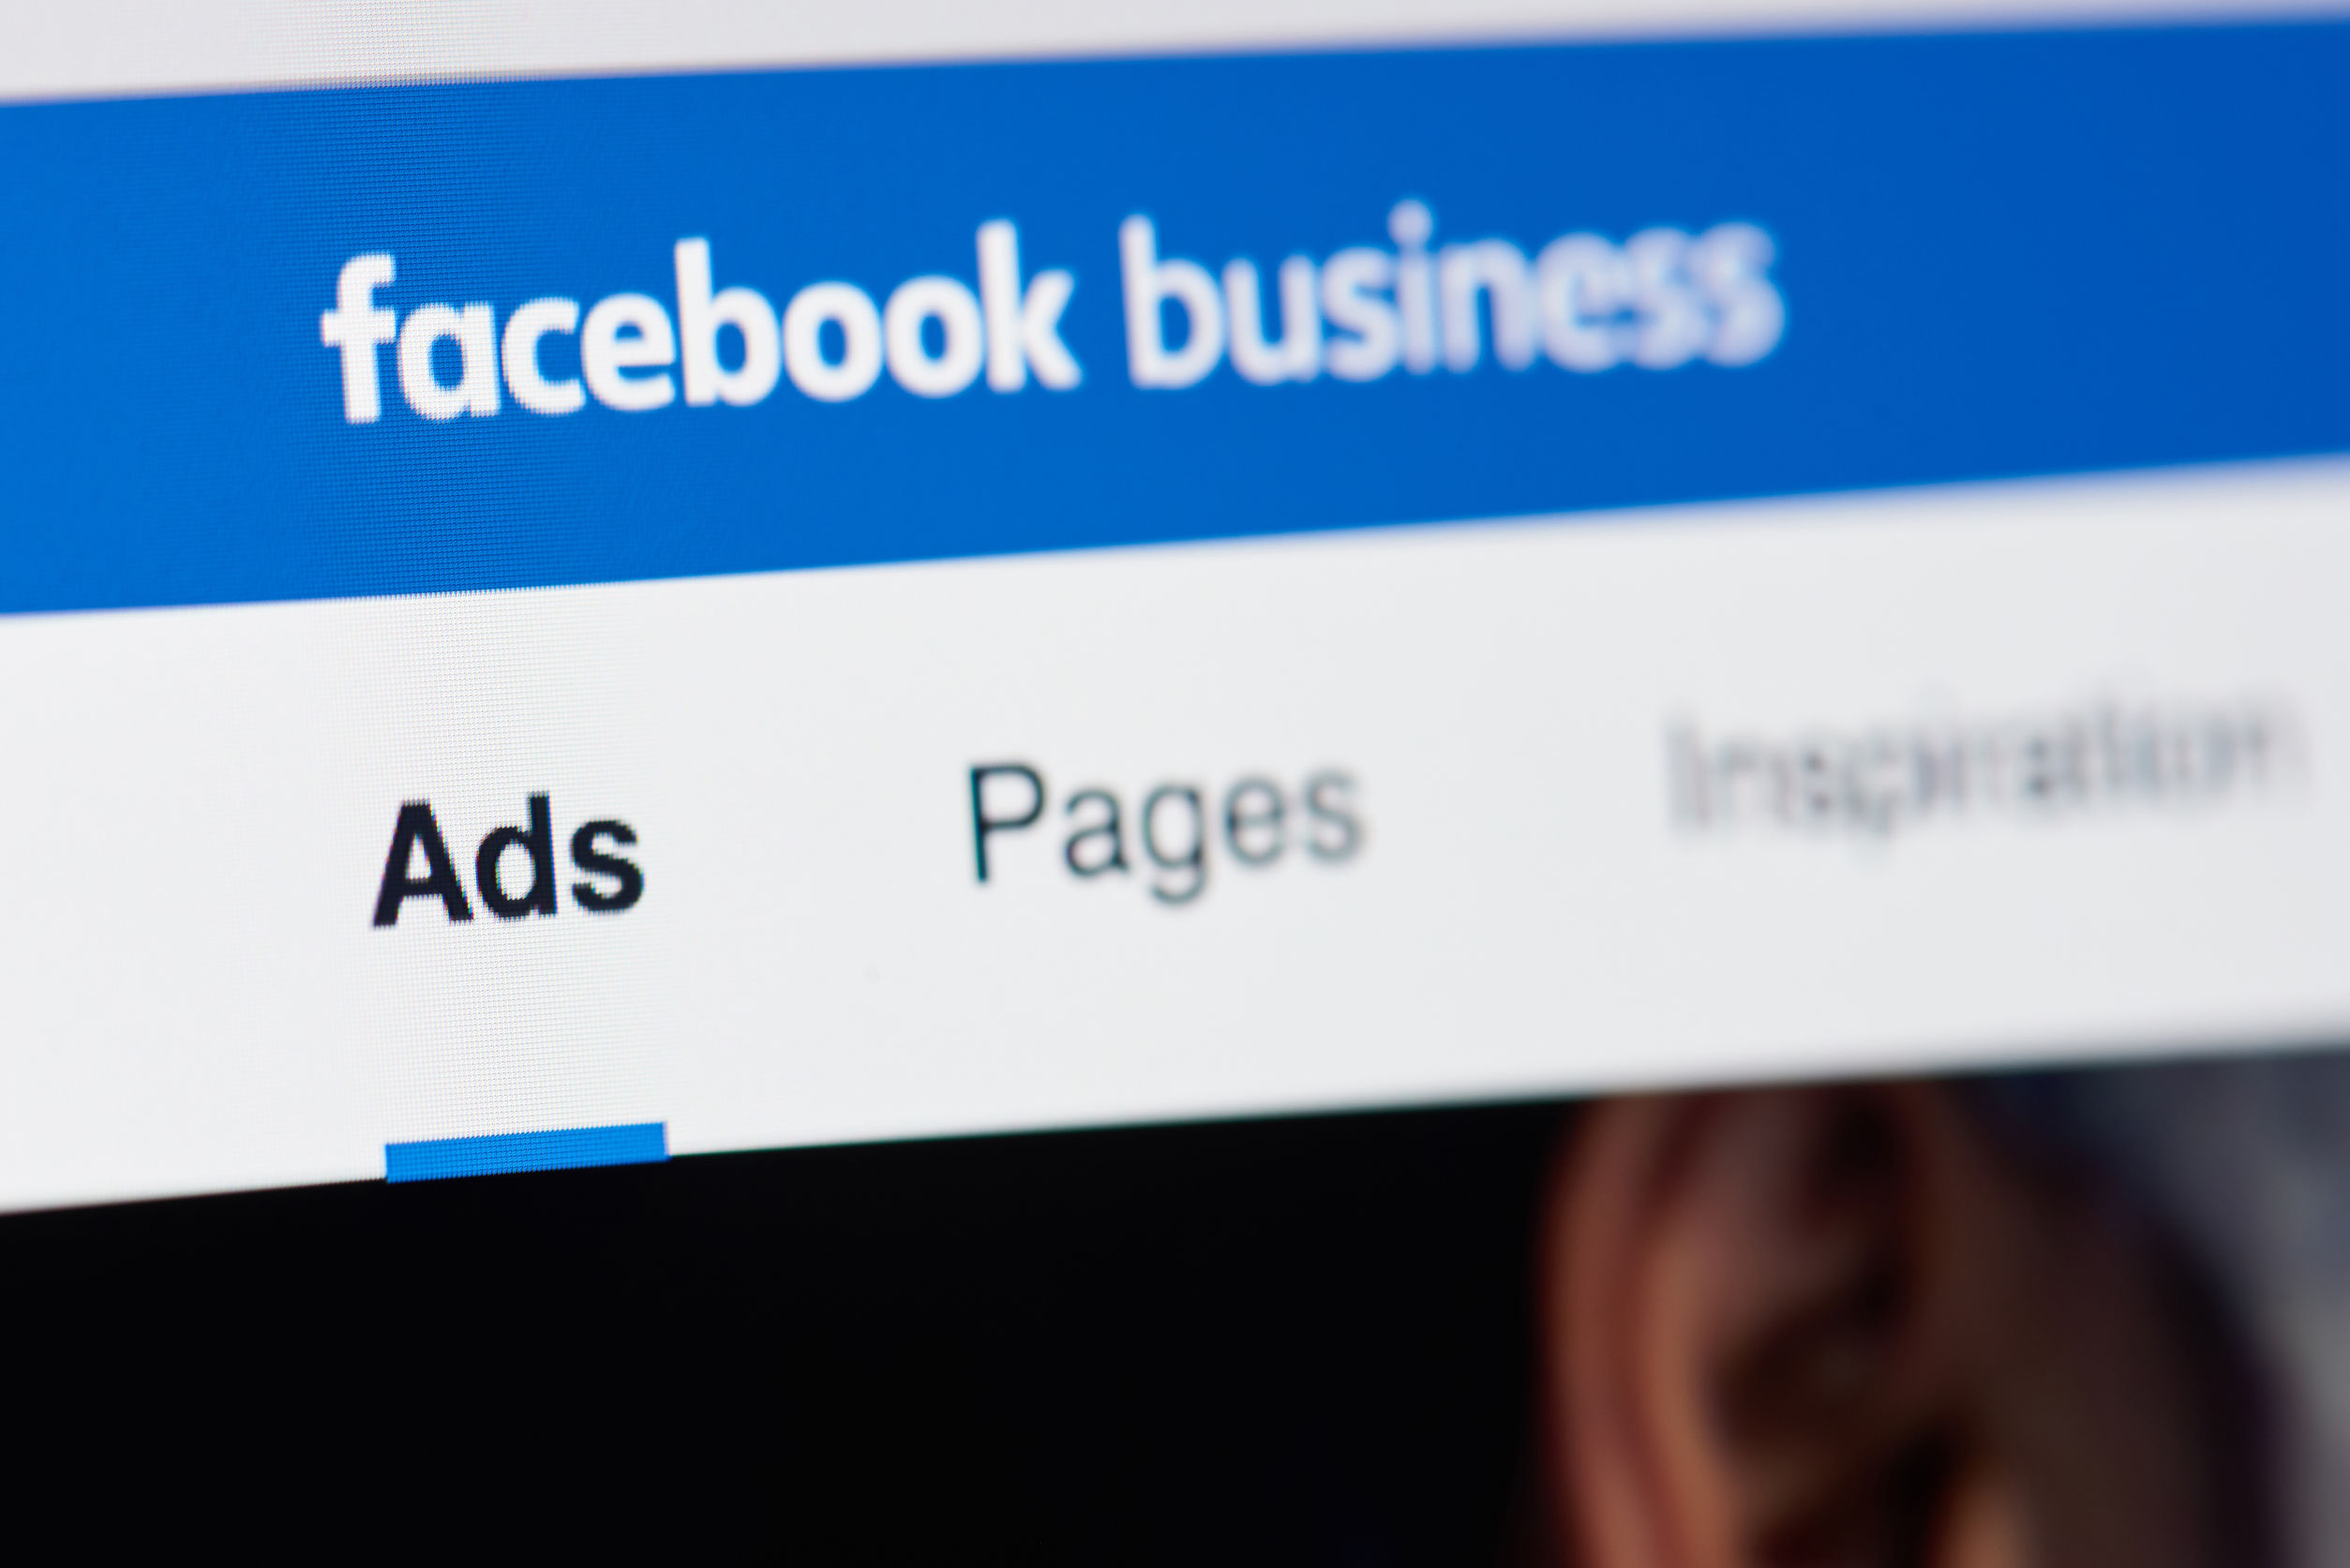 Why The Facebook Pixel Is Essential To Your eCommerce Business